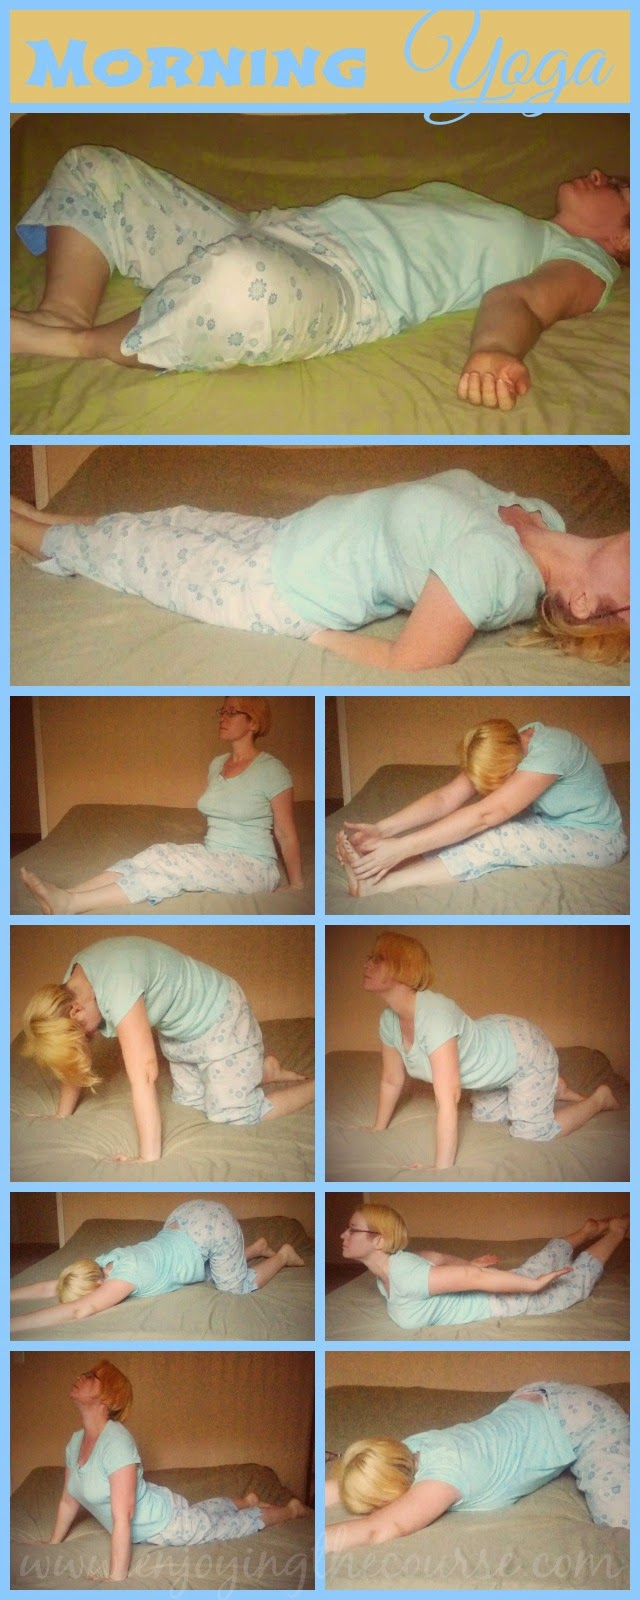 Morning Yoga Sequence (before getting out of bed)